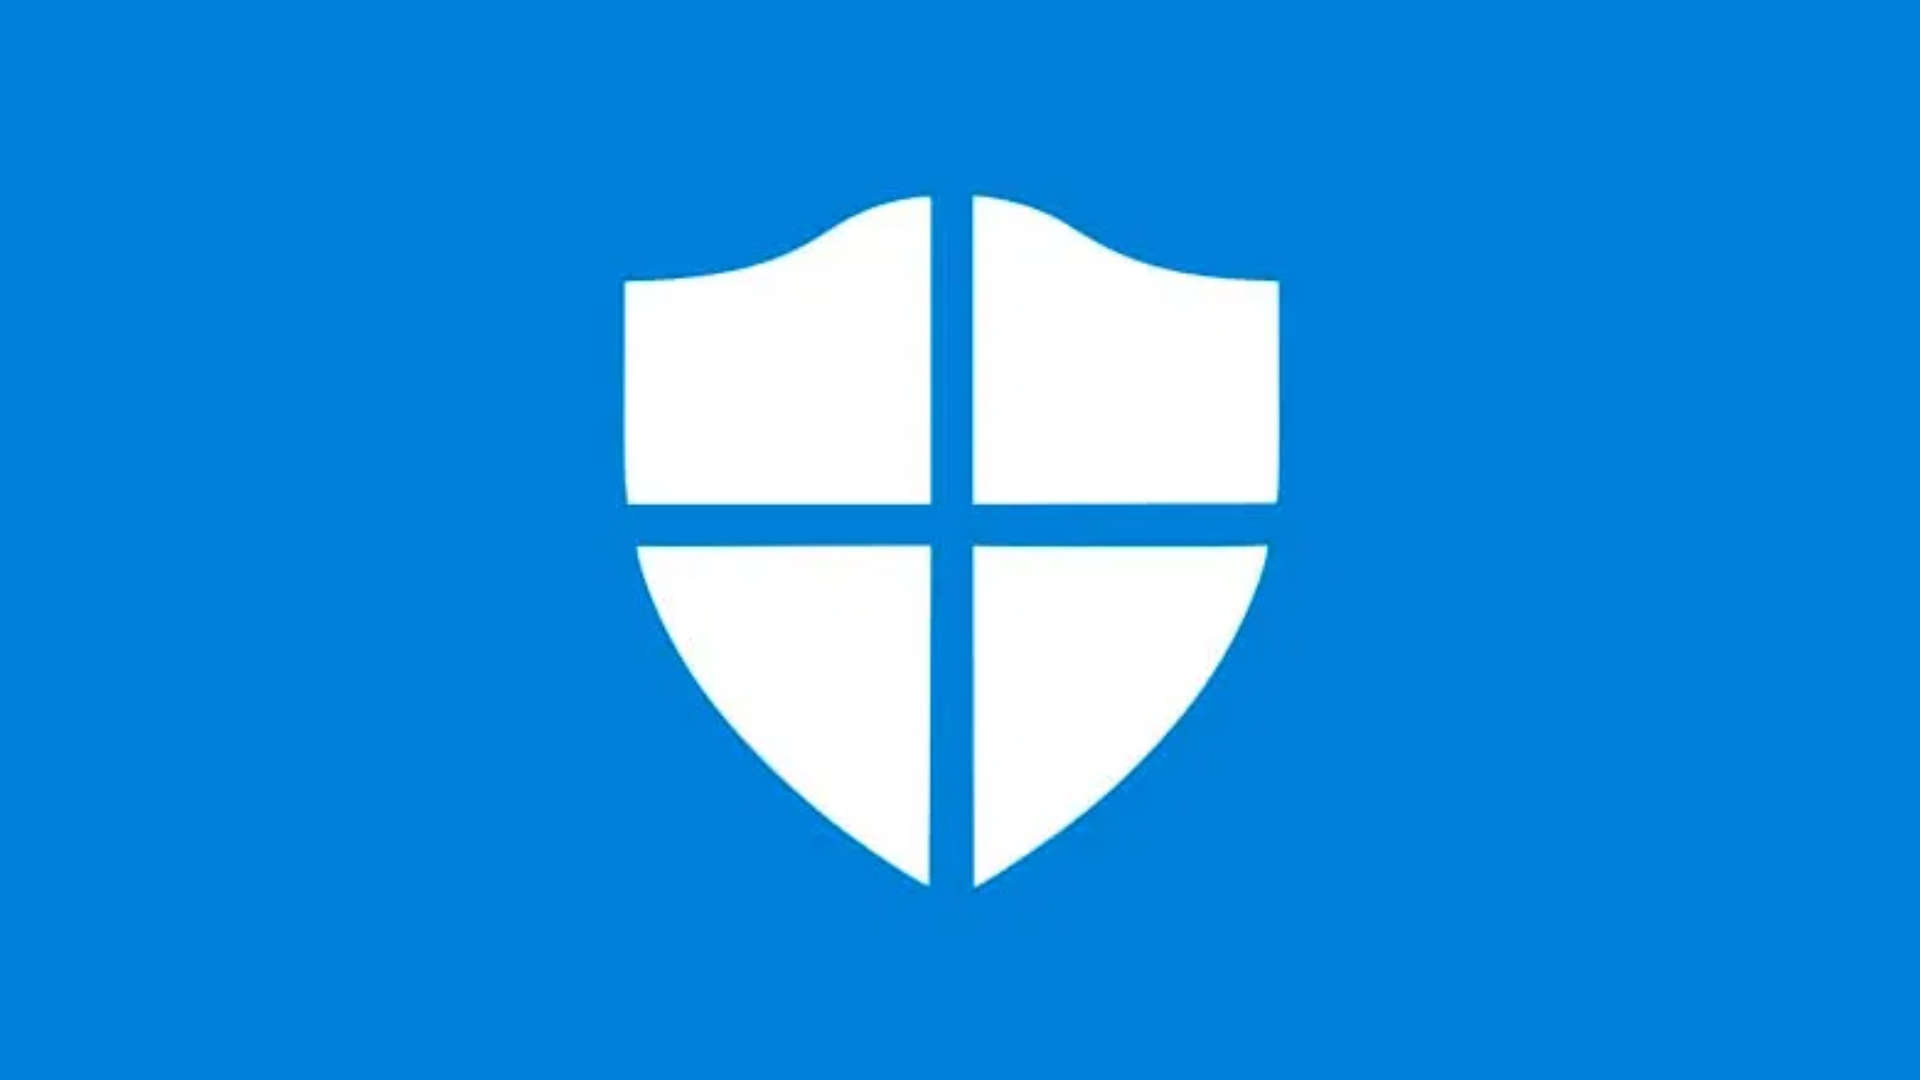 Windows Defender vulnerability finally patched after 12 years